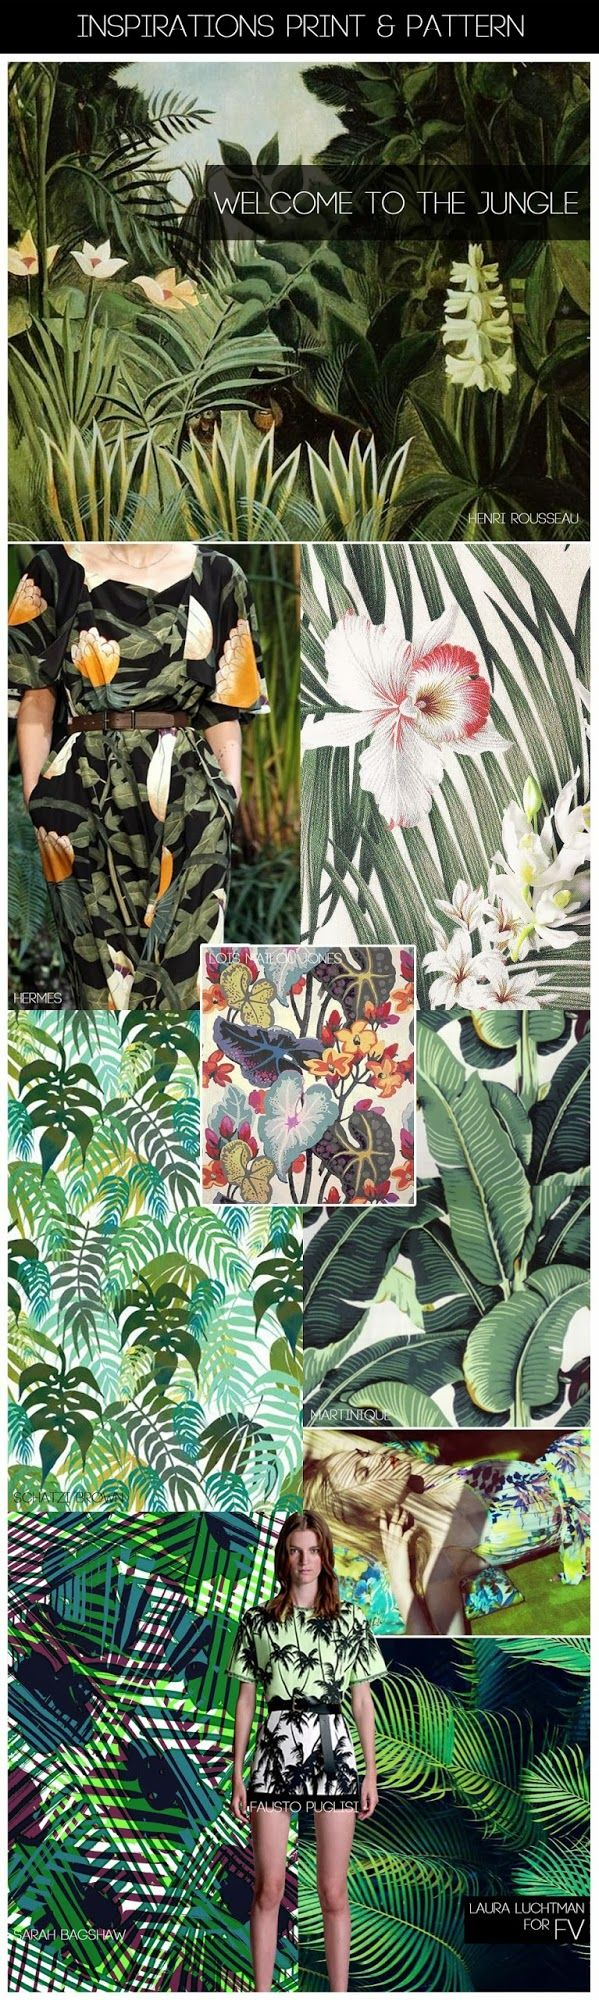 FASHION VIGNETTE: [ INSPIRATIONS PRINT + PATTERN ] KUKKA by Laura Luchtman - SS 2015 WELCOME TO THE JUNGLE